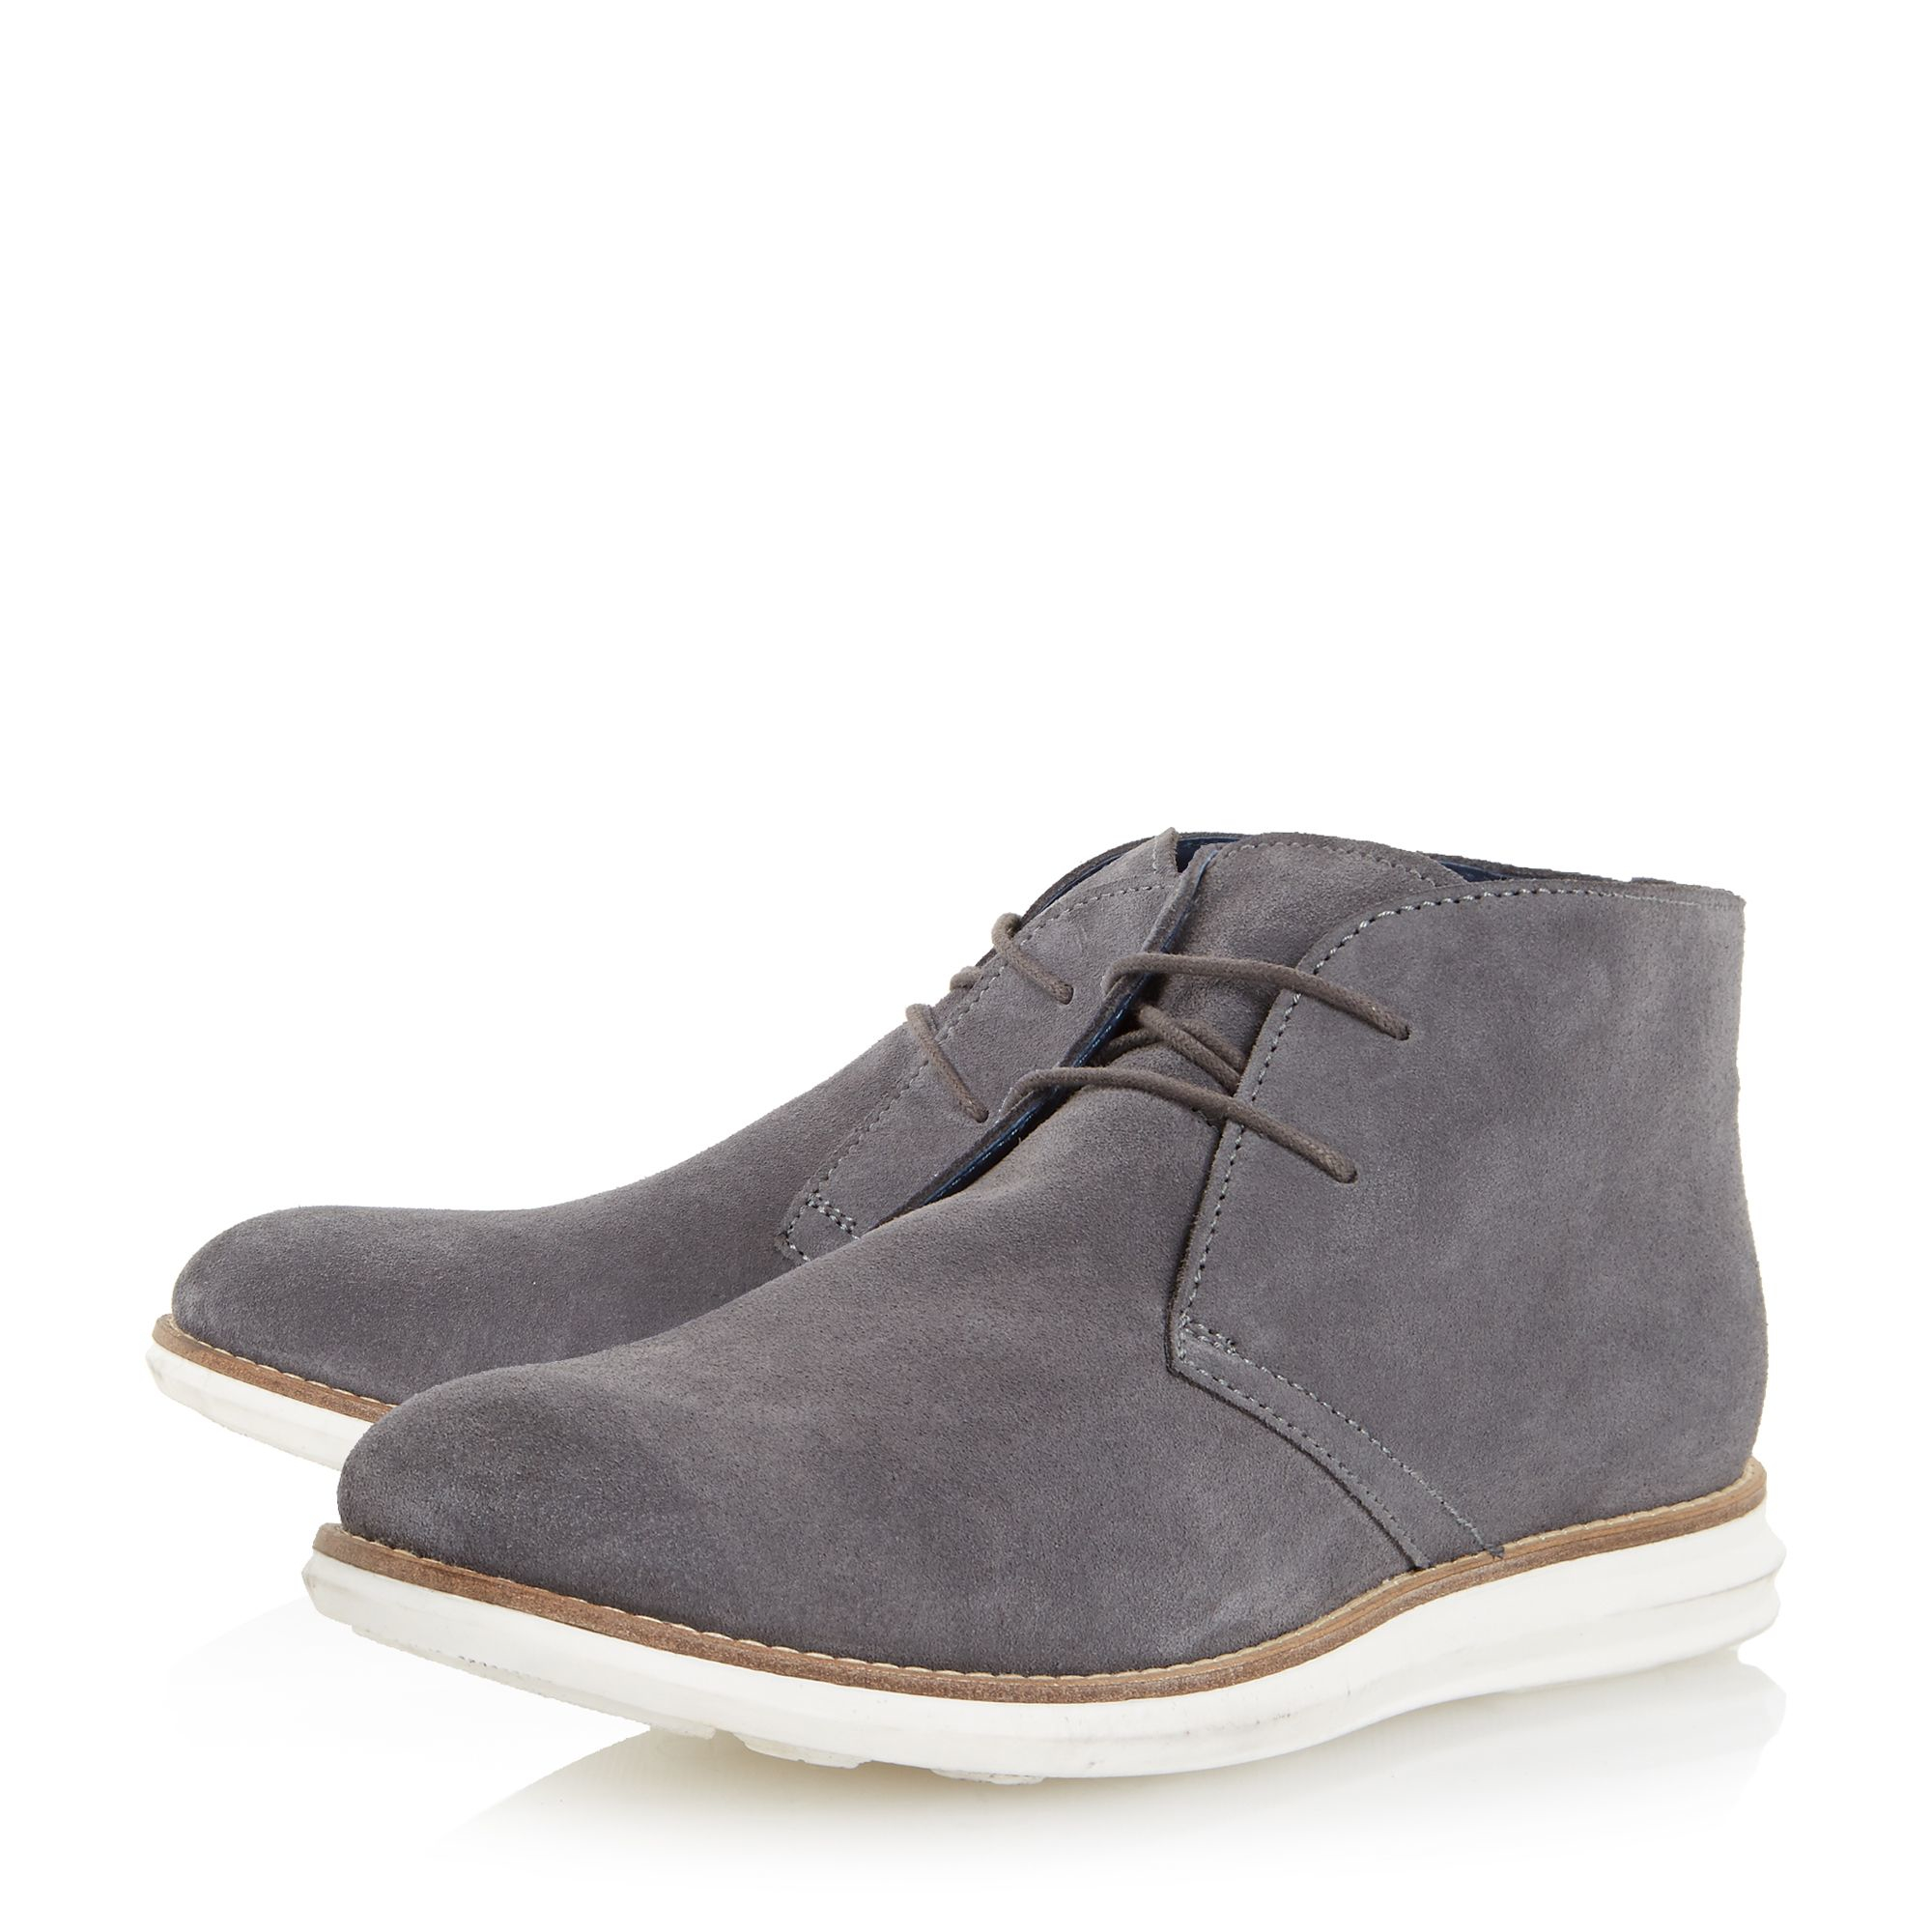 dune cove suede hybrid wedge boots in gray for lyst